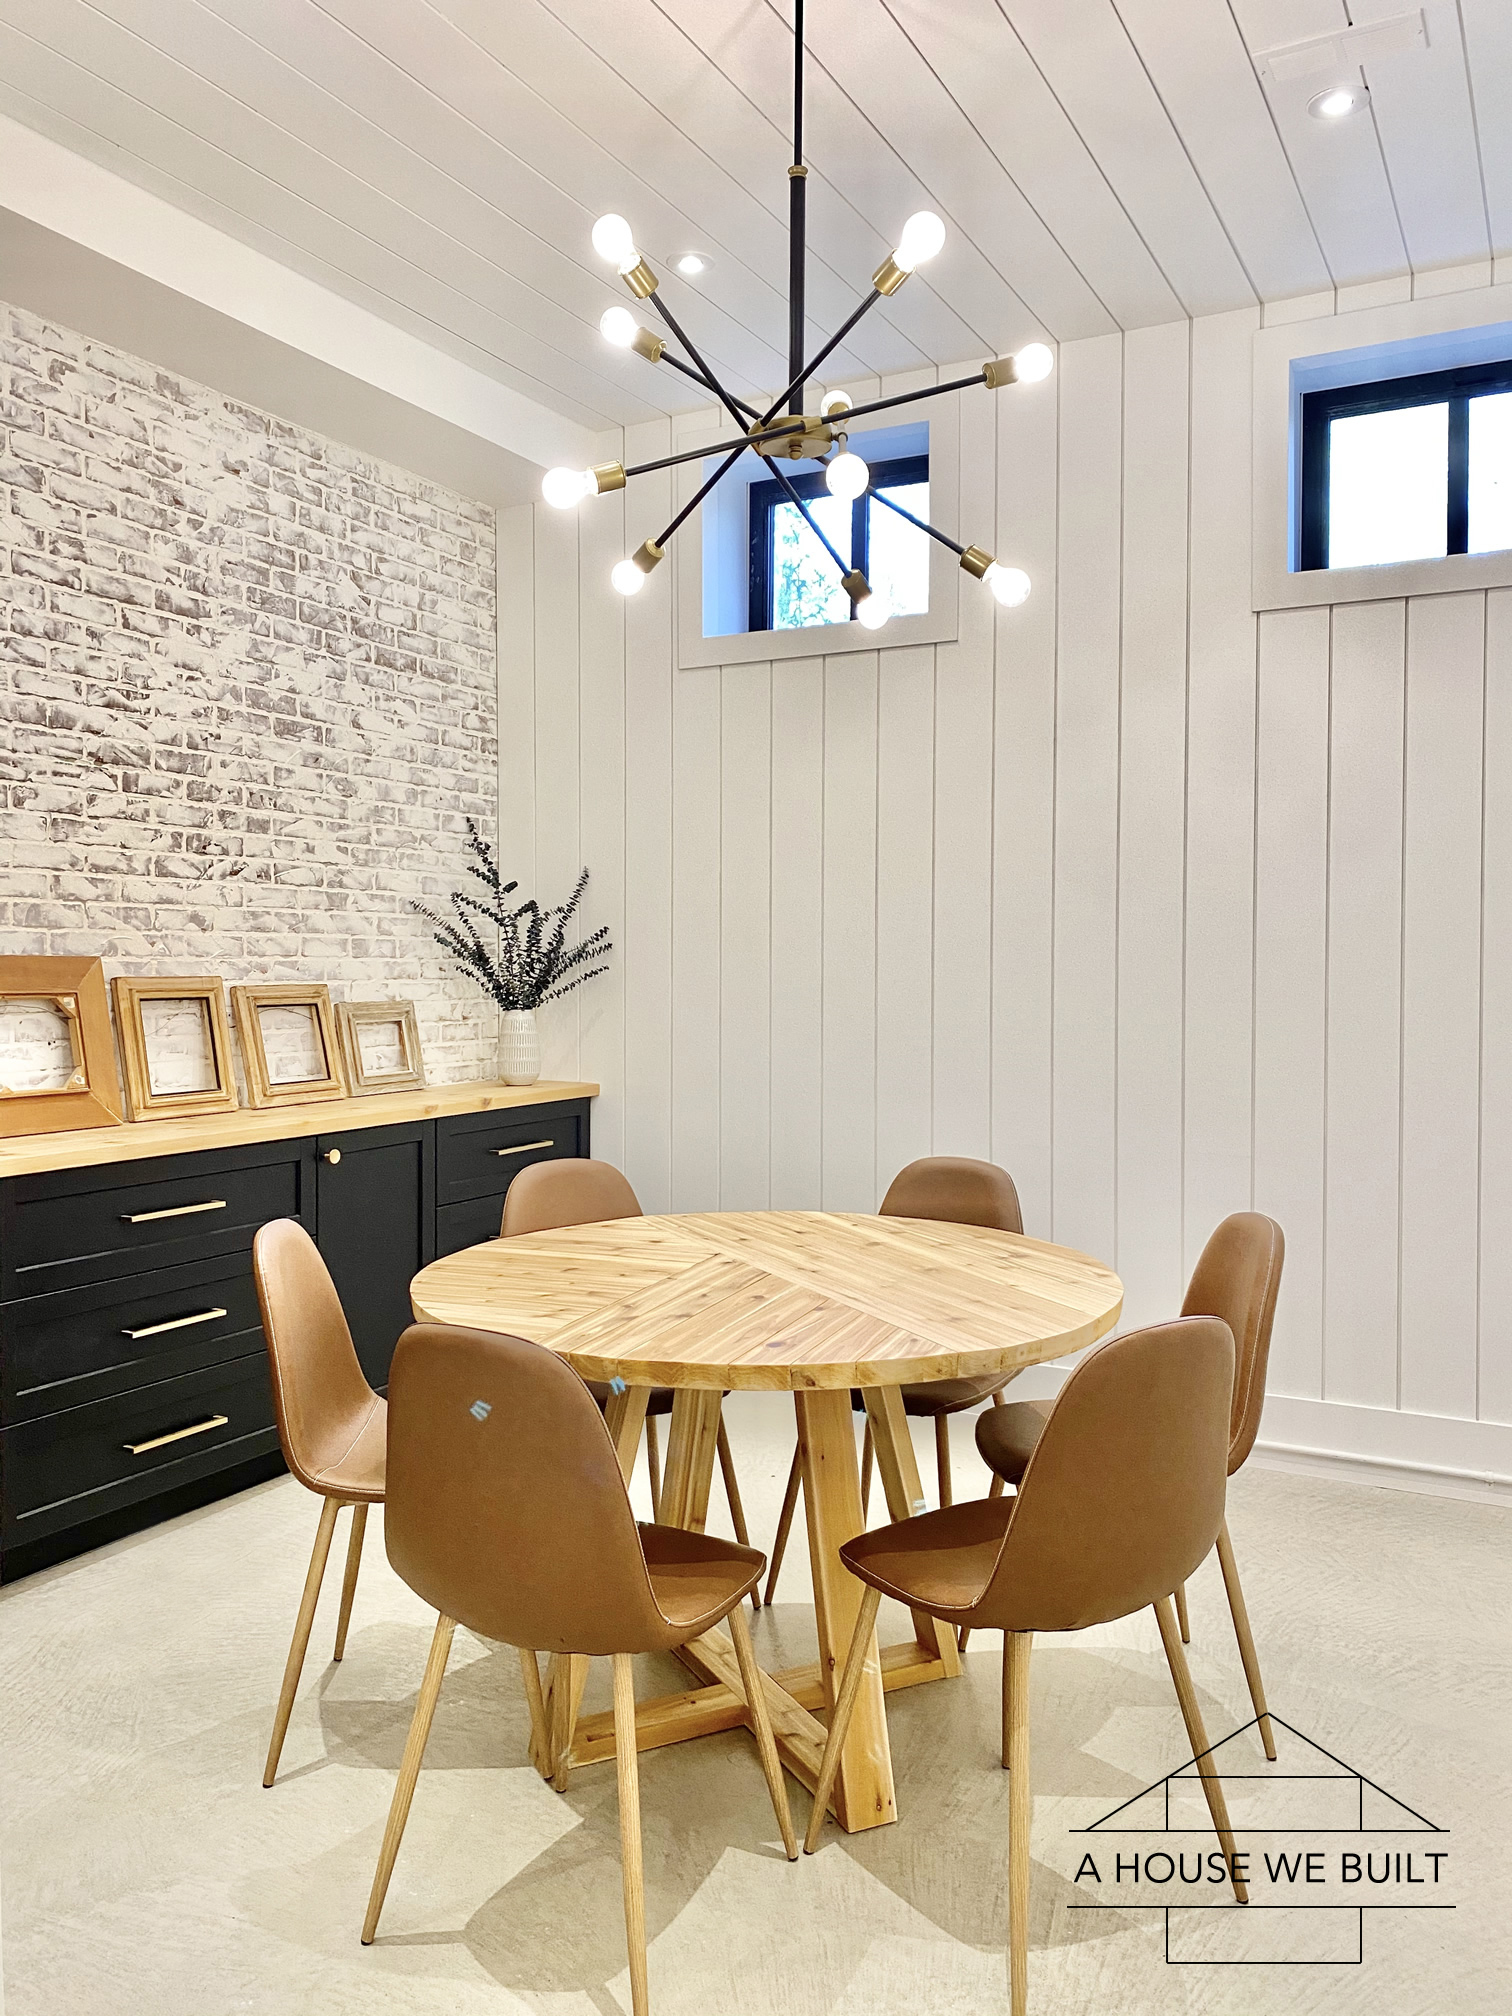 How To Build A Round Table